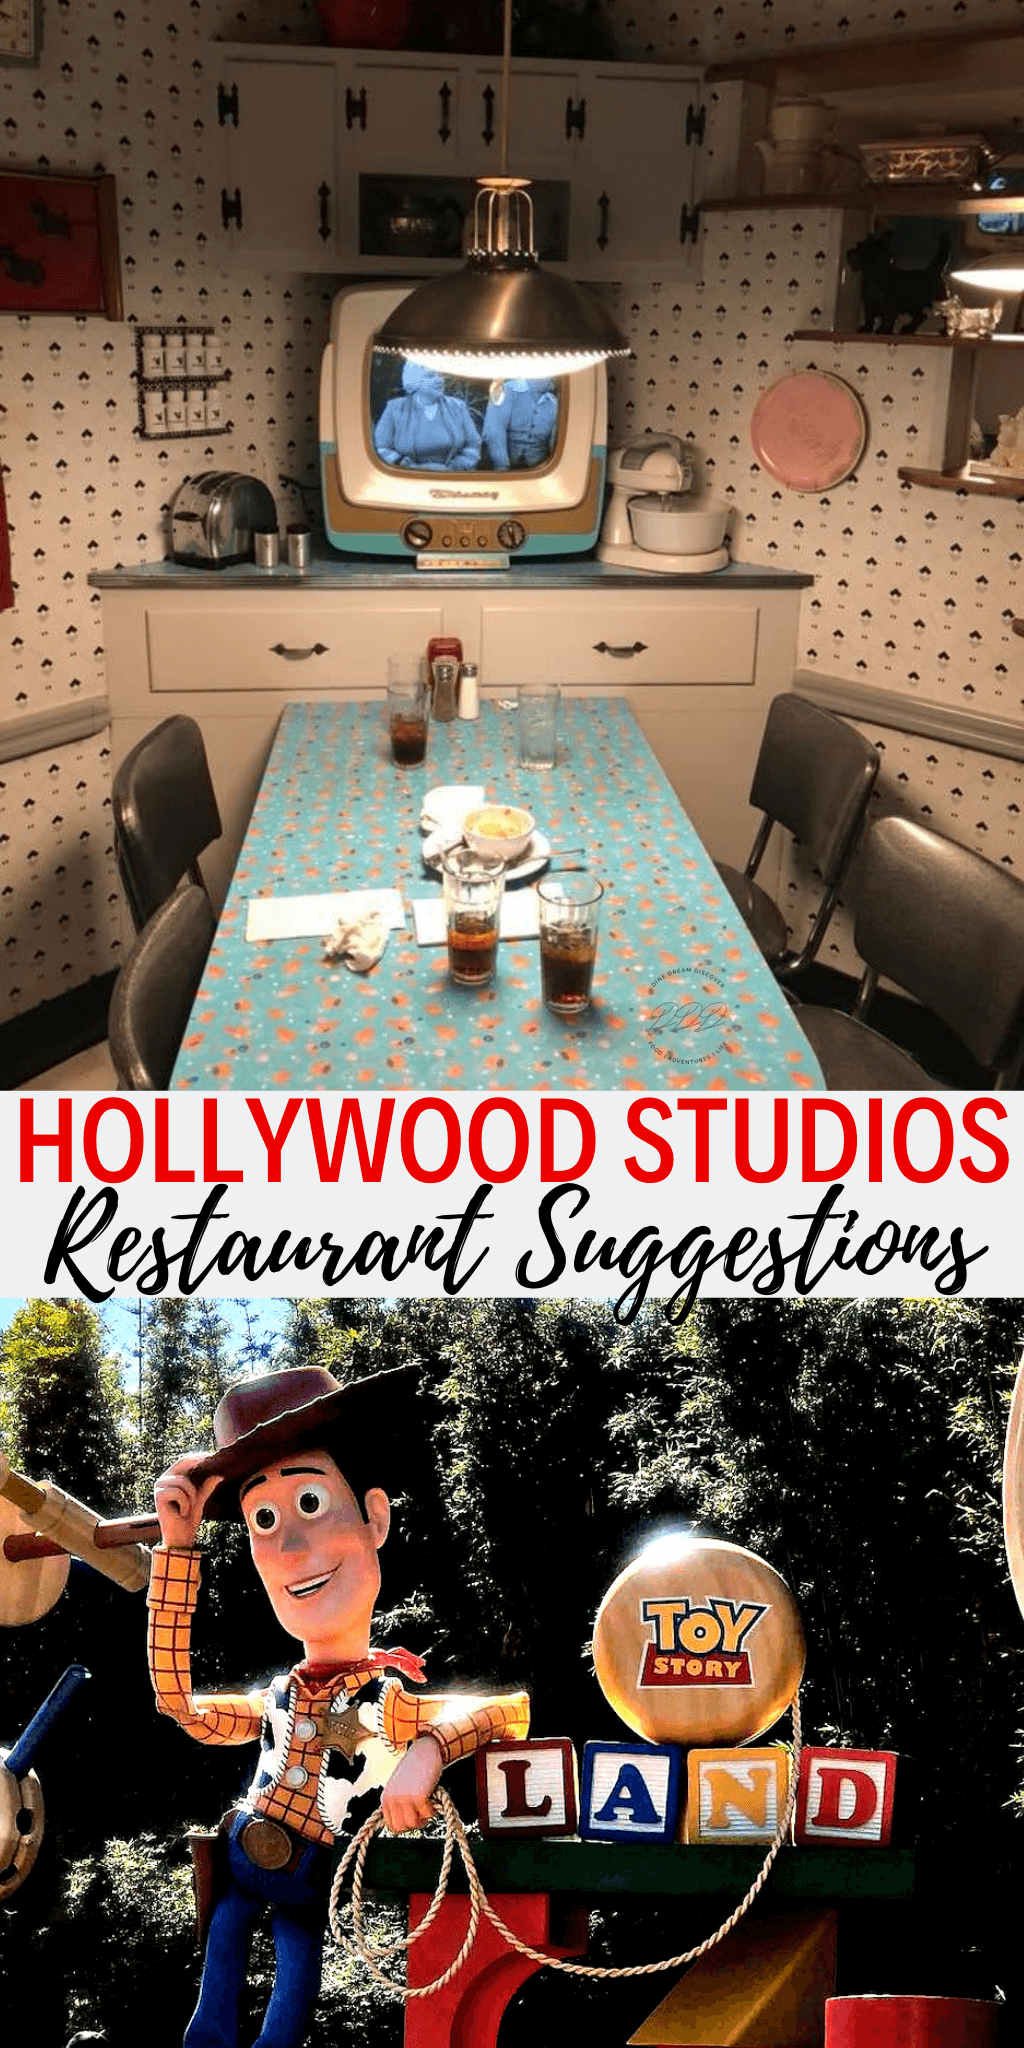 Since the park is likely to be at full capacity, you should also focus on securing reservations for these Hollywood Studios restaurants where possible. #DineDreamDiscover #JustPlumCrazy #DisneyNewswire #LifeInTheRV #RV #FullTimeRV #TravelBlogger #Travel #GoRVing #Disney #DIsneyparks #disneyworld #Disneyland #DisneySMC